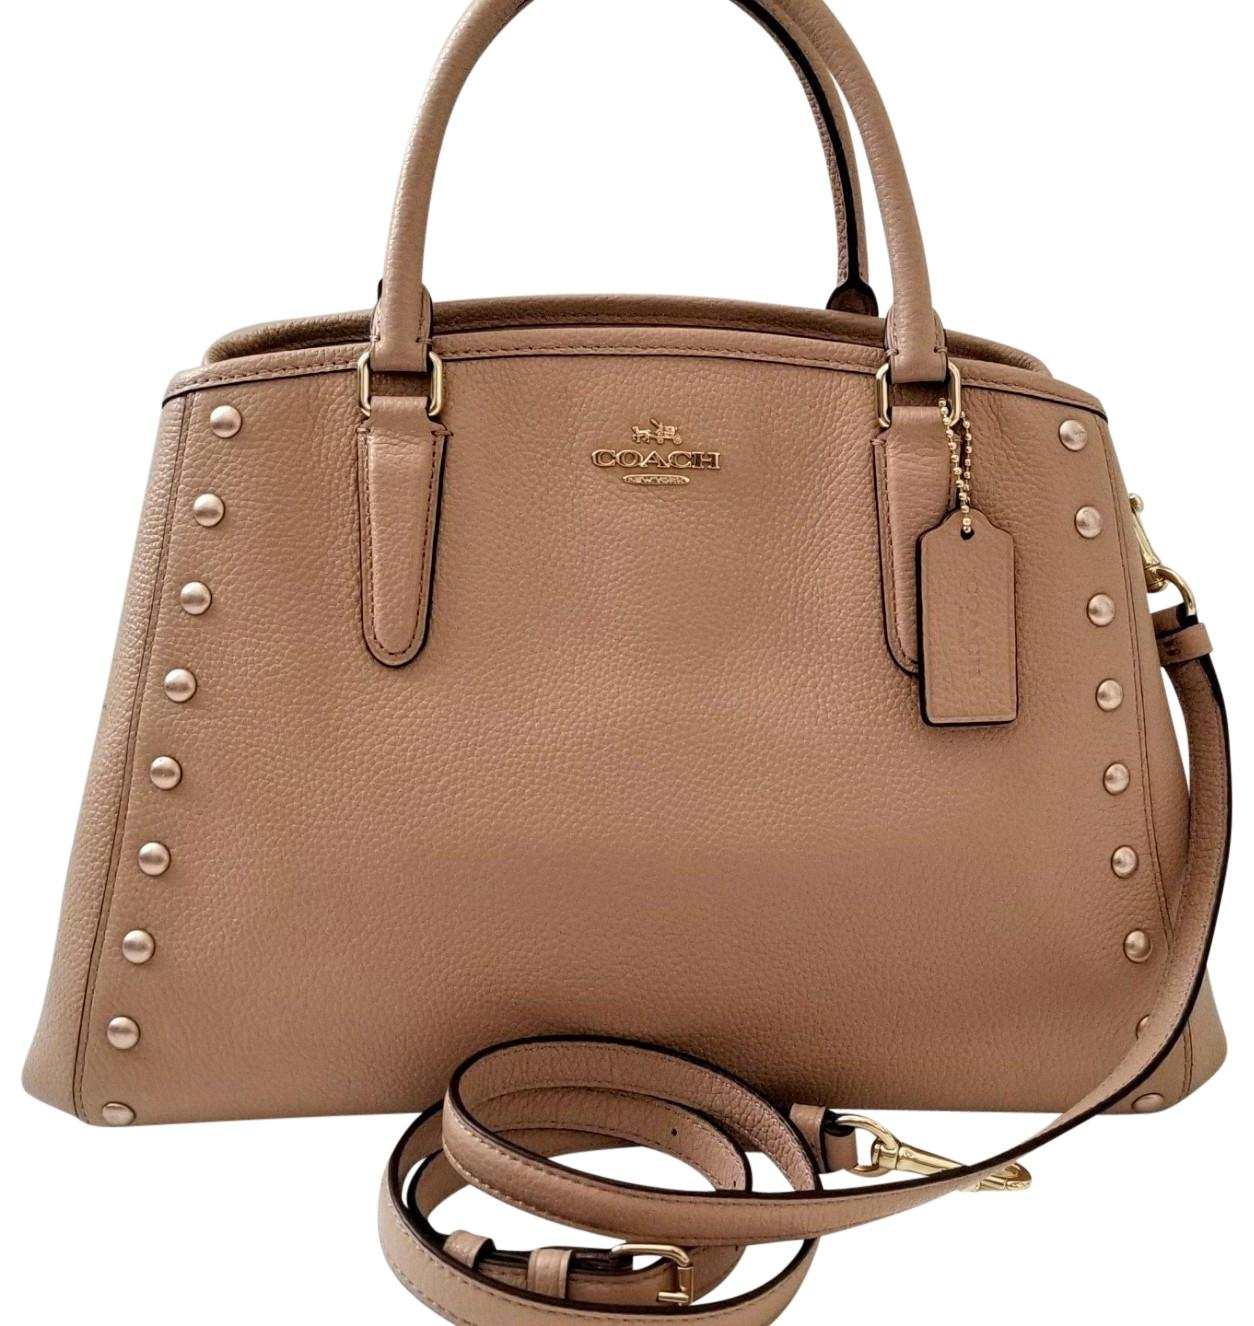 59a4b15d35 ... low price coach gold hardware leather two way crossbody studded satchel  in nude pink f2594 cf003